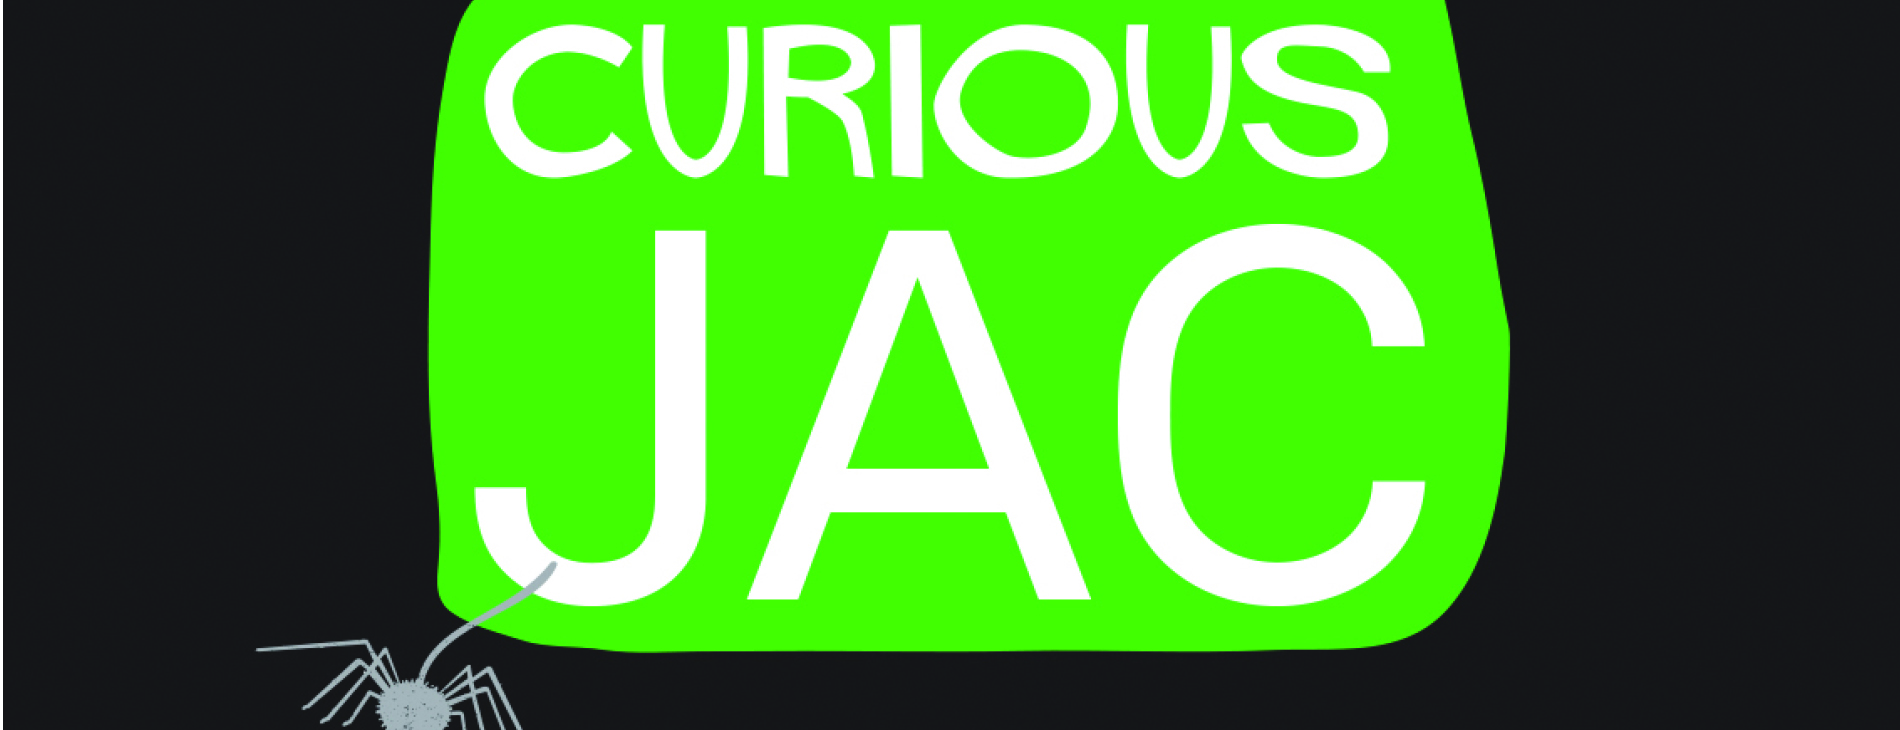 curious jac, monkey baa theatre company, monkey bar, childrens theatre, darling harbour, darling quarter